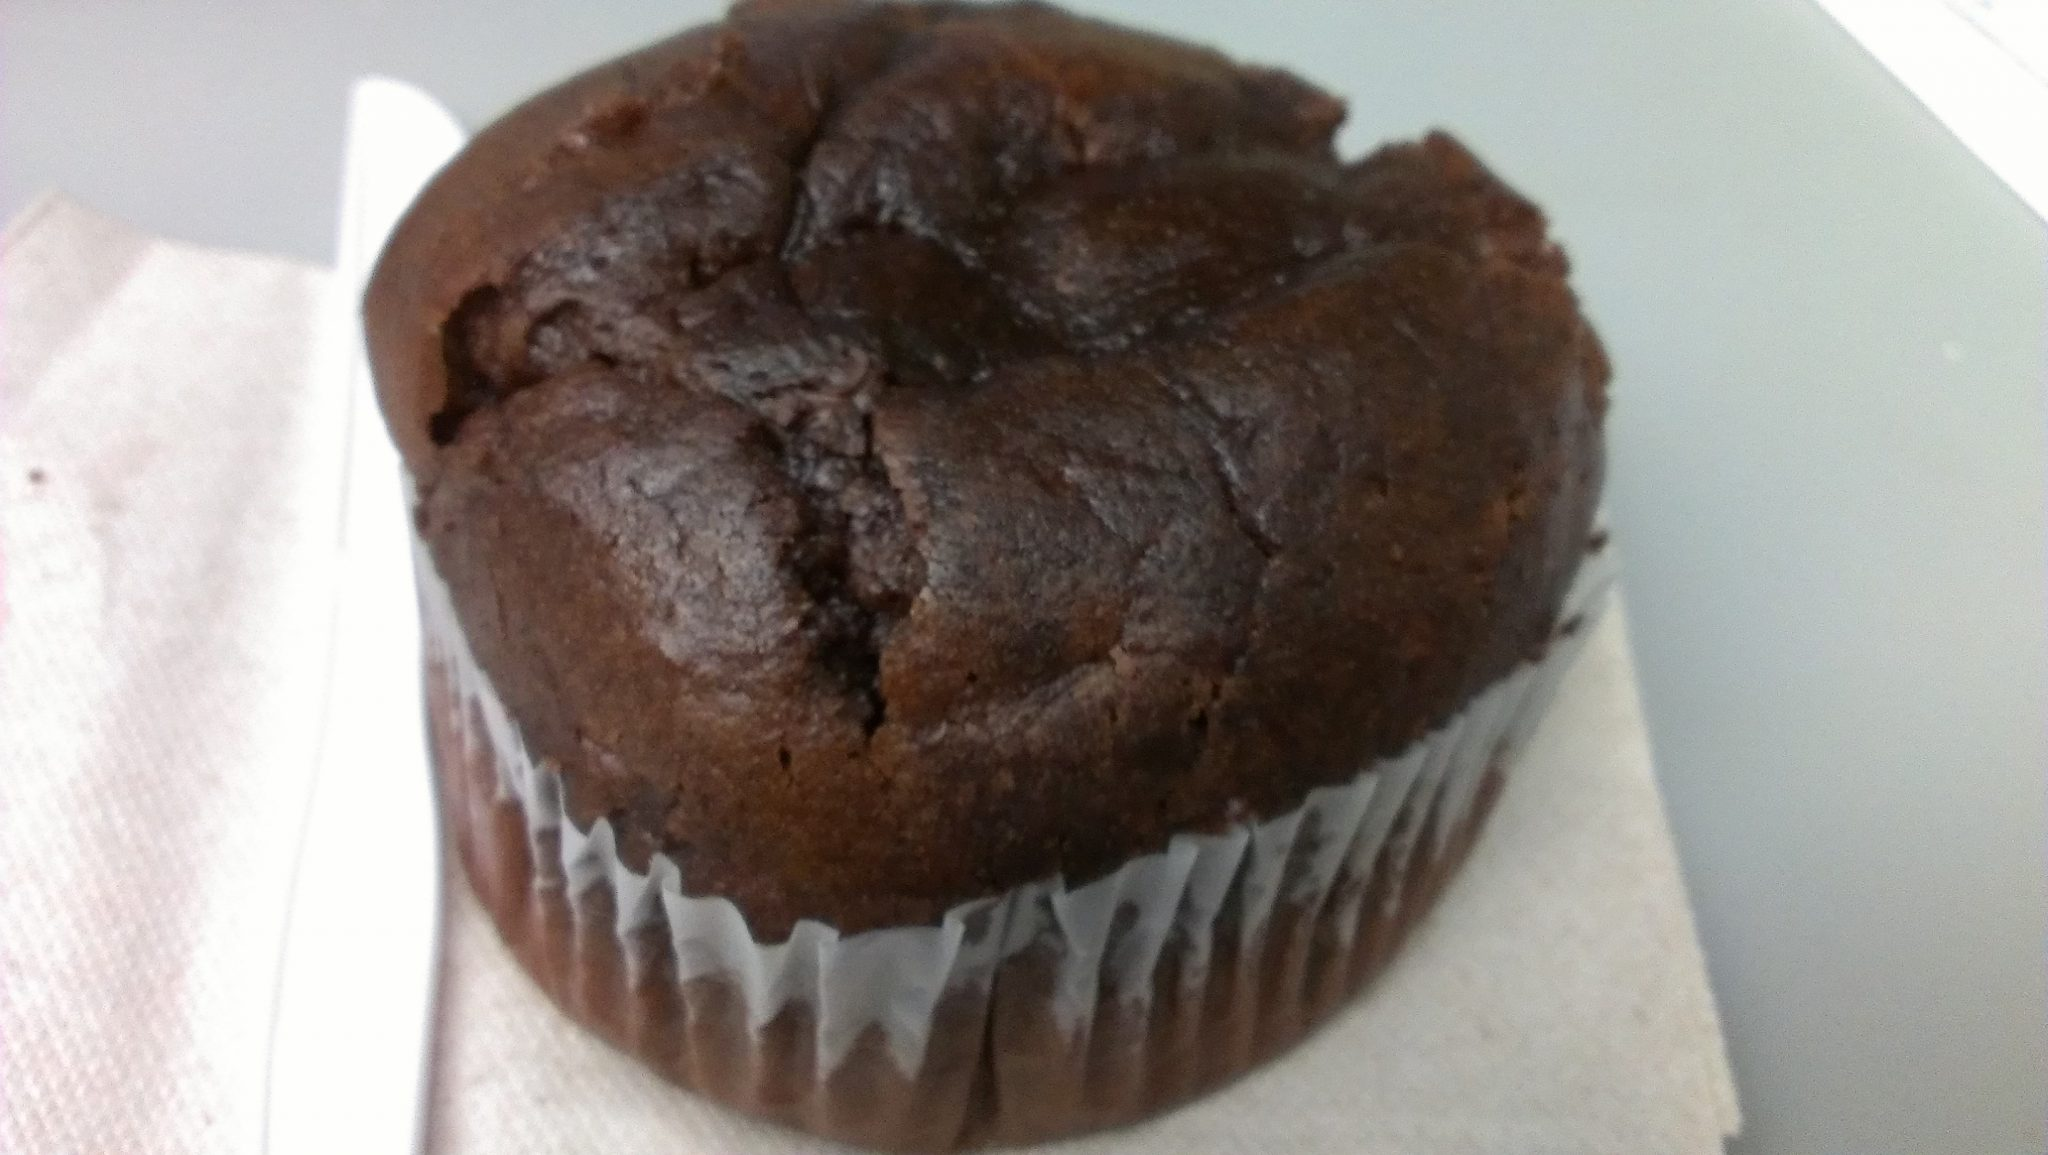 Kirkland Double Chocolate Muffin Calories